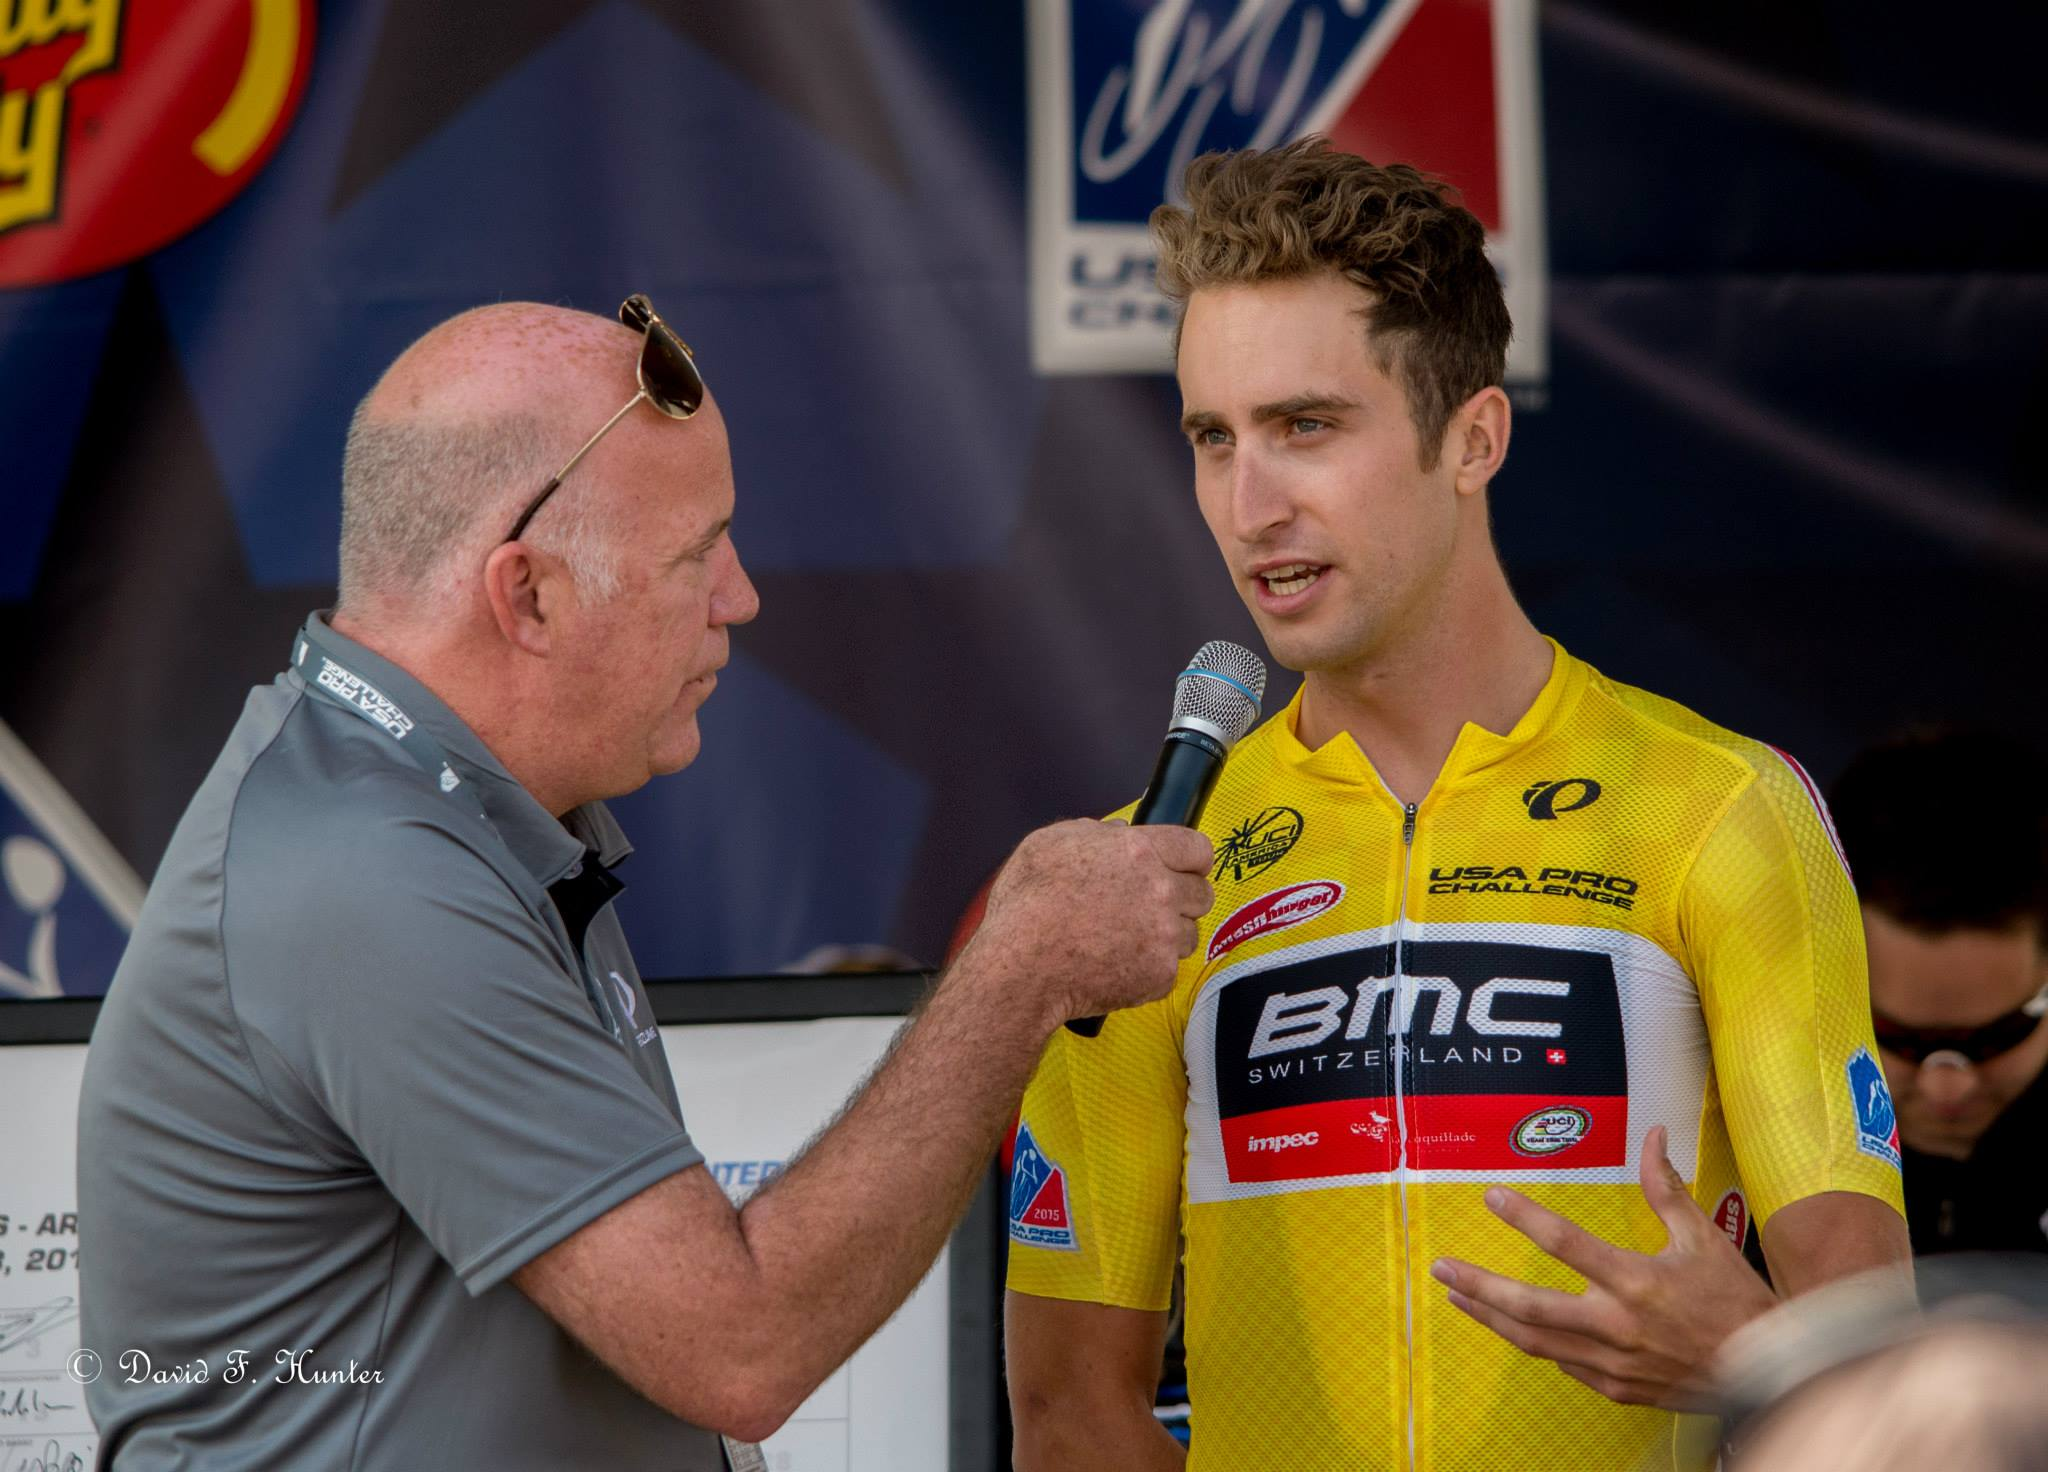 Dave with Taylor Phinney at the USA Pro Challenge in 2015. Photo taken on Facebook by David Hunter